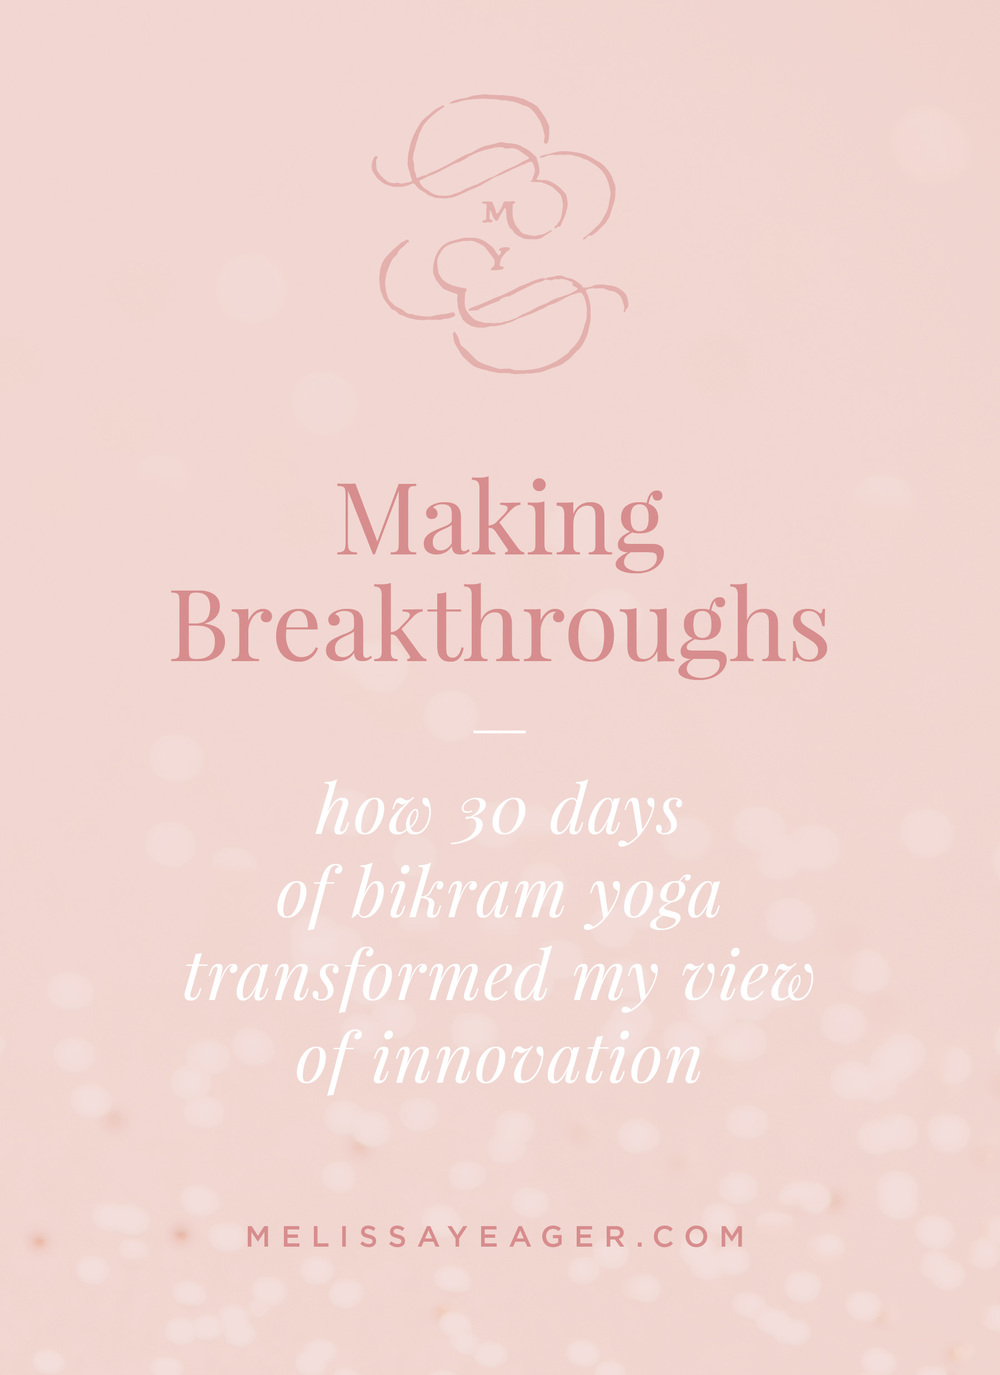 Making Breakthroughs - how 30 days of bikram yoga transformed my view of innovation